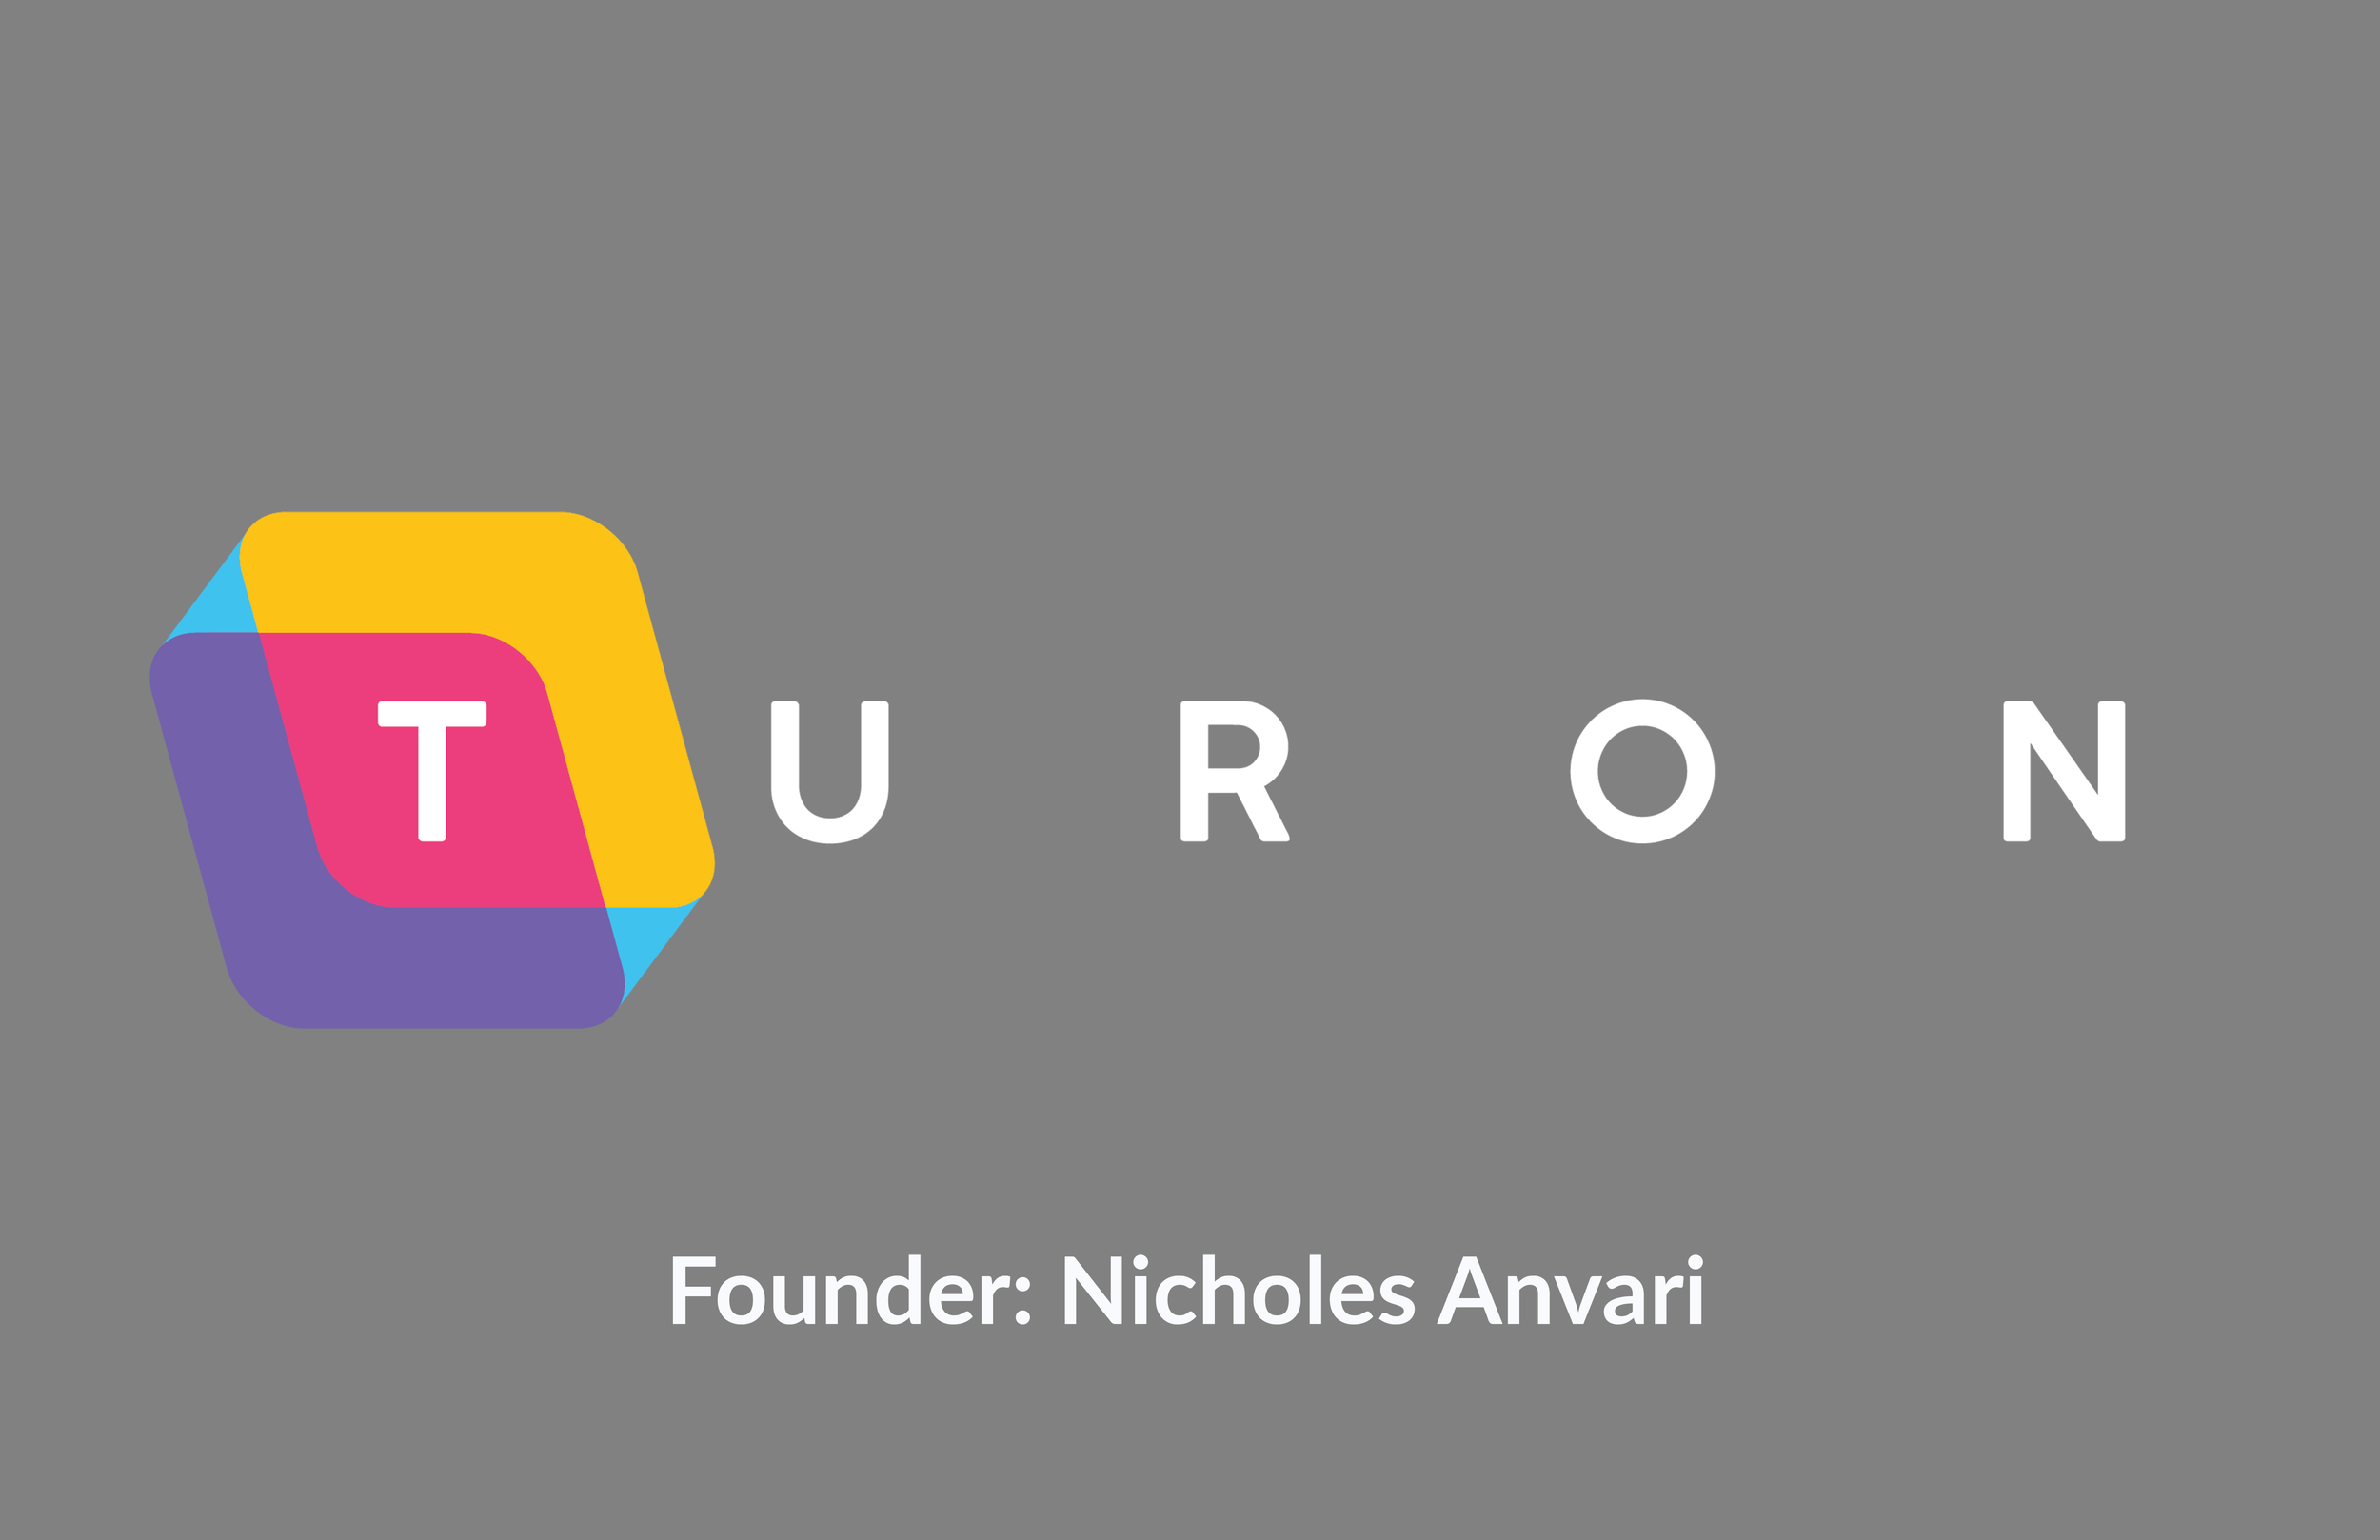 Turon - Turon is a peer to peer private tutoring platform for college students. By pairing students with the most affordable, knowledgeable and relevant tutors for their classes, Turon supplements in class learning with private tutoring options for university attendants.Website